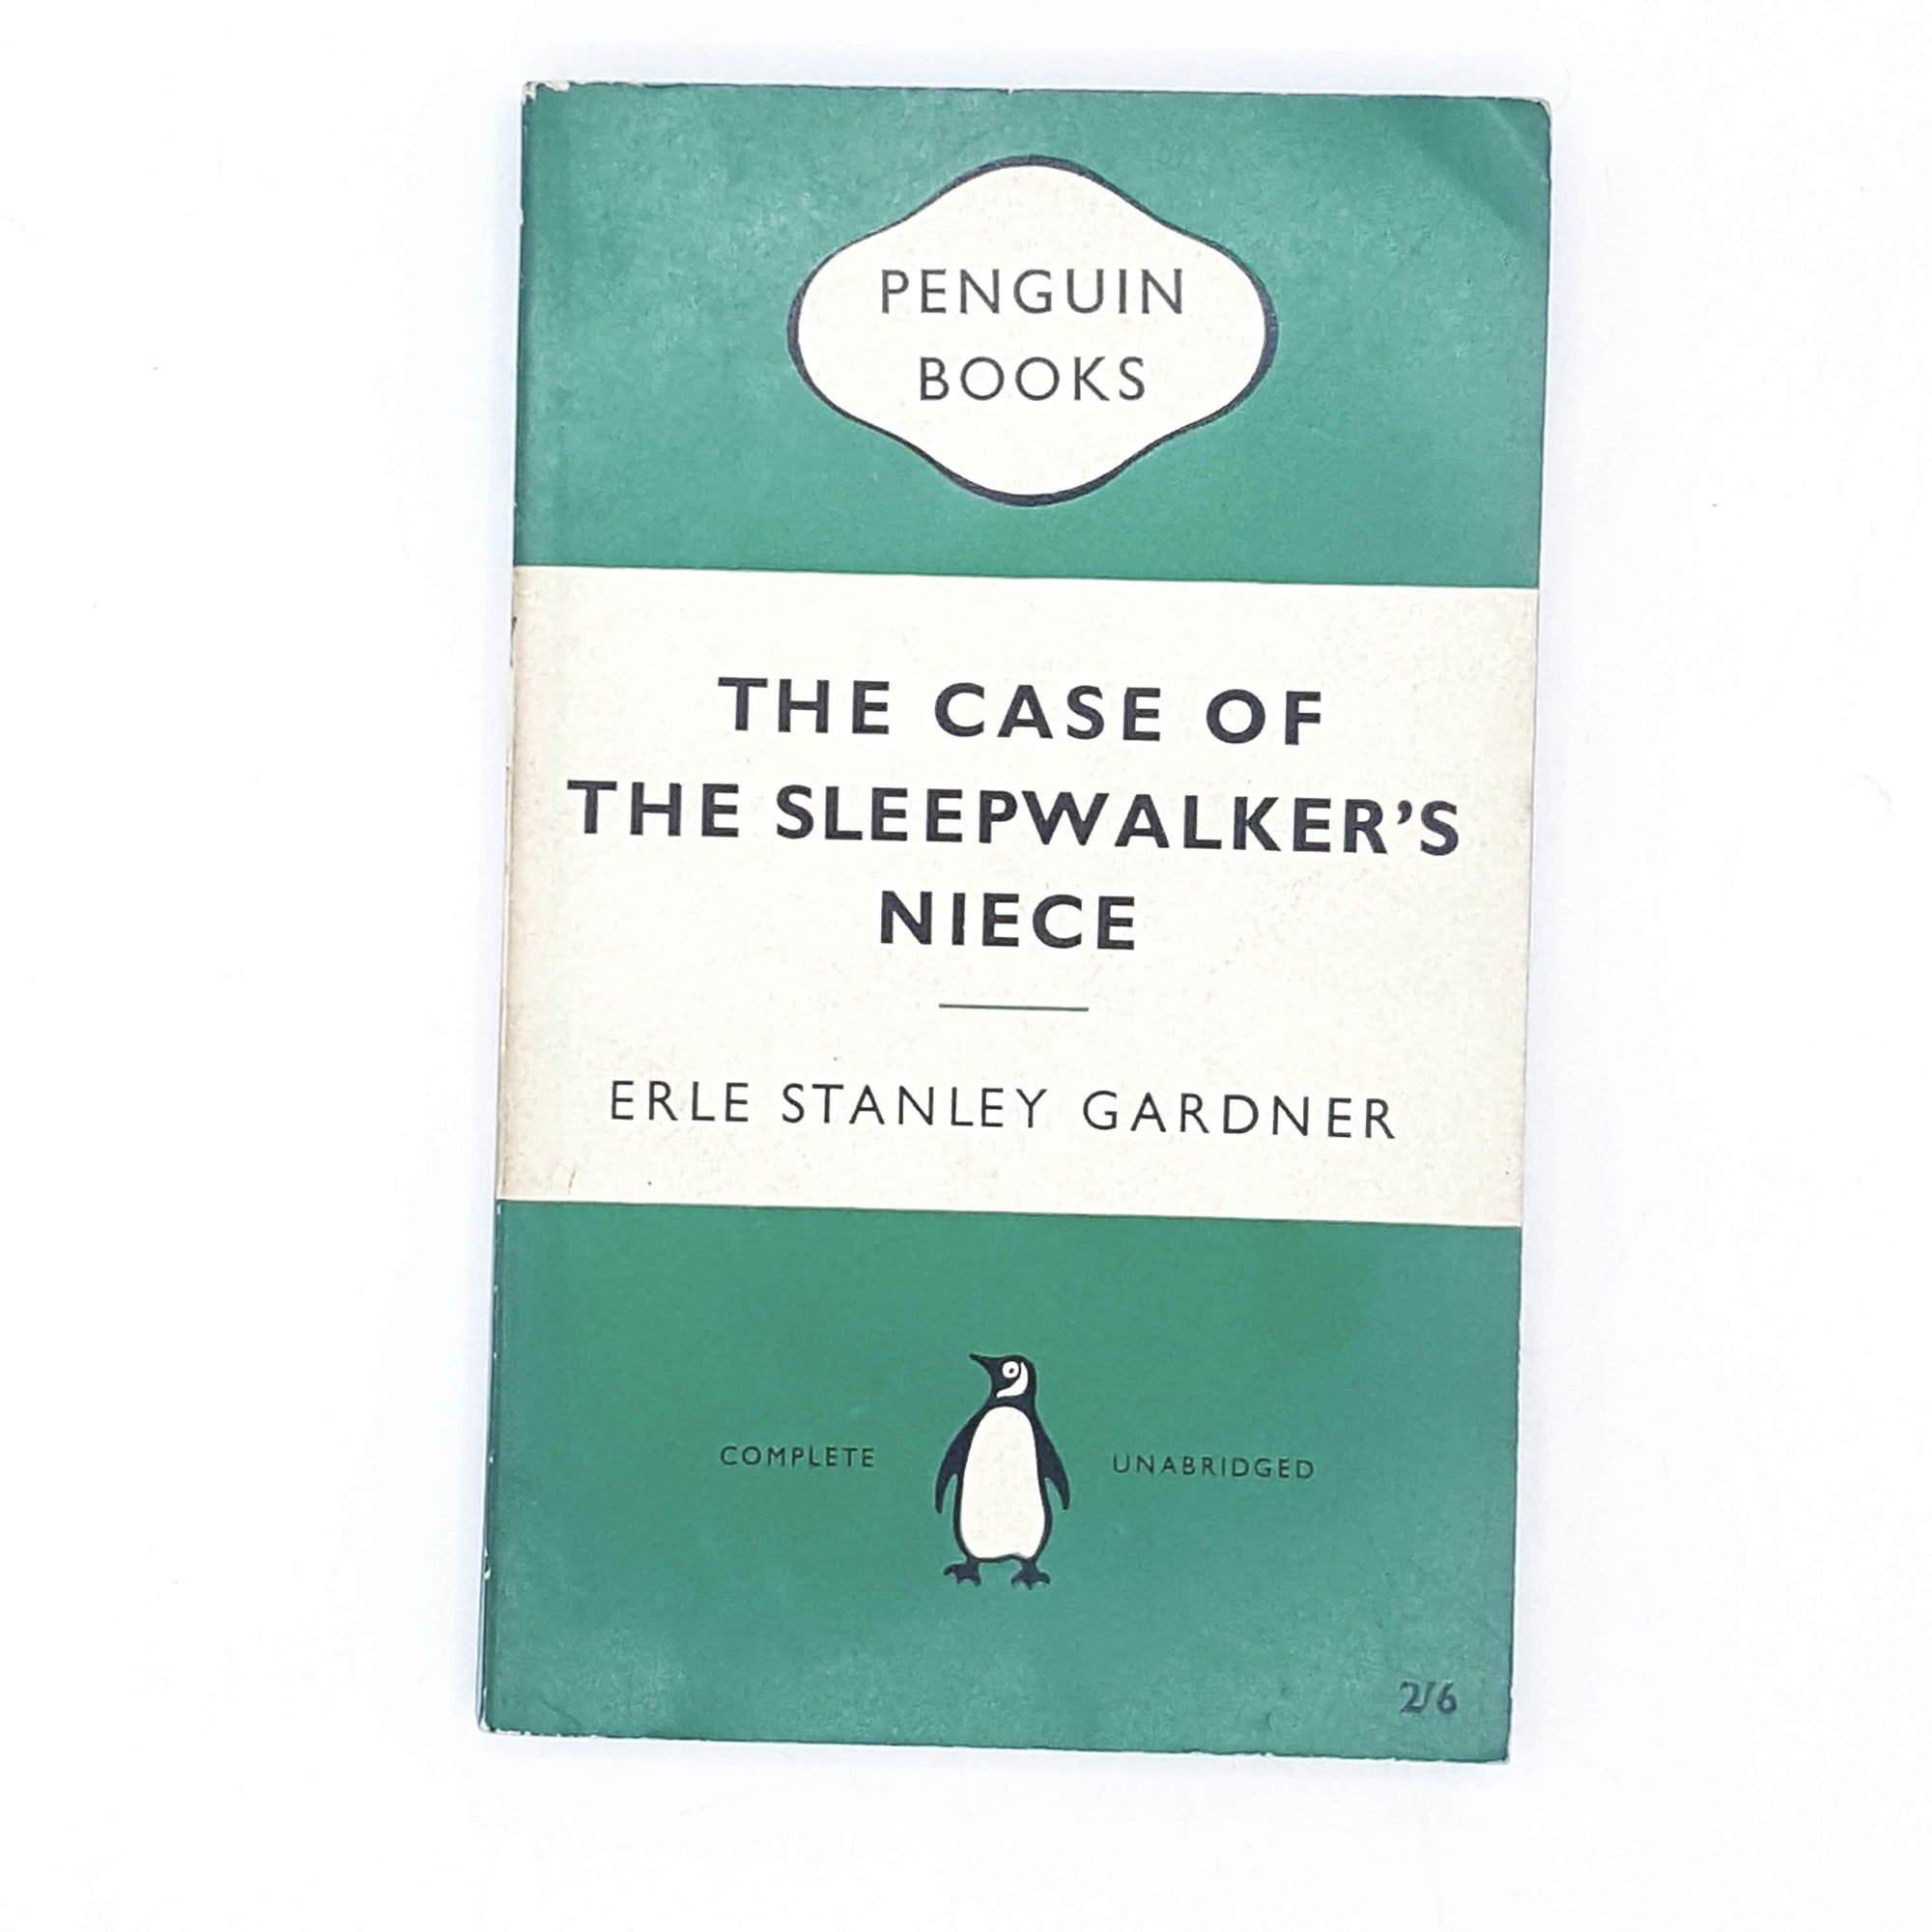 The Case of The Sleepwalker's Niece by Erle Stanley Gardner 1959